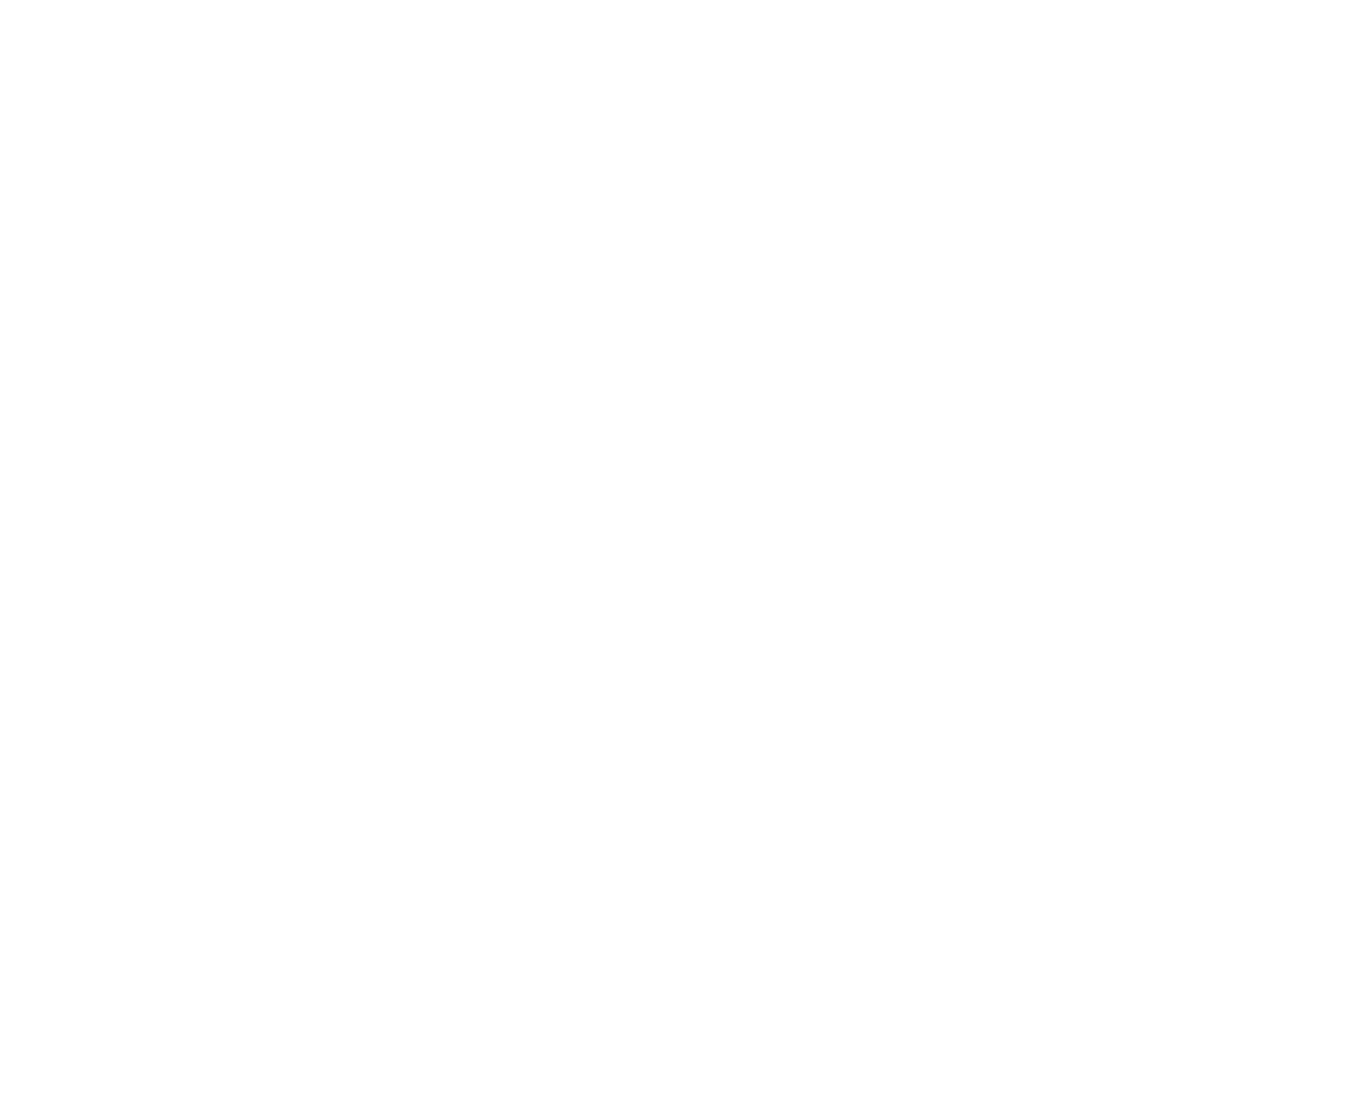 The Year of Food and Drink Scotland 2015